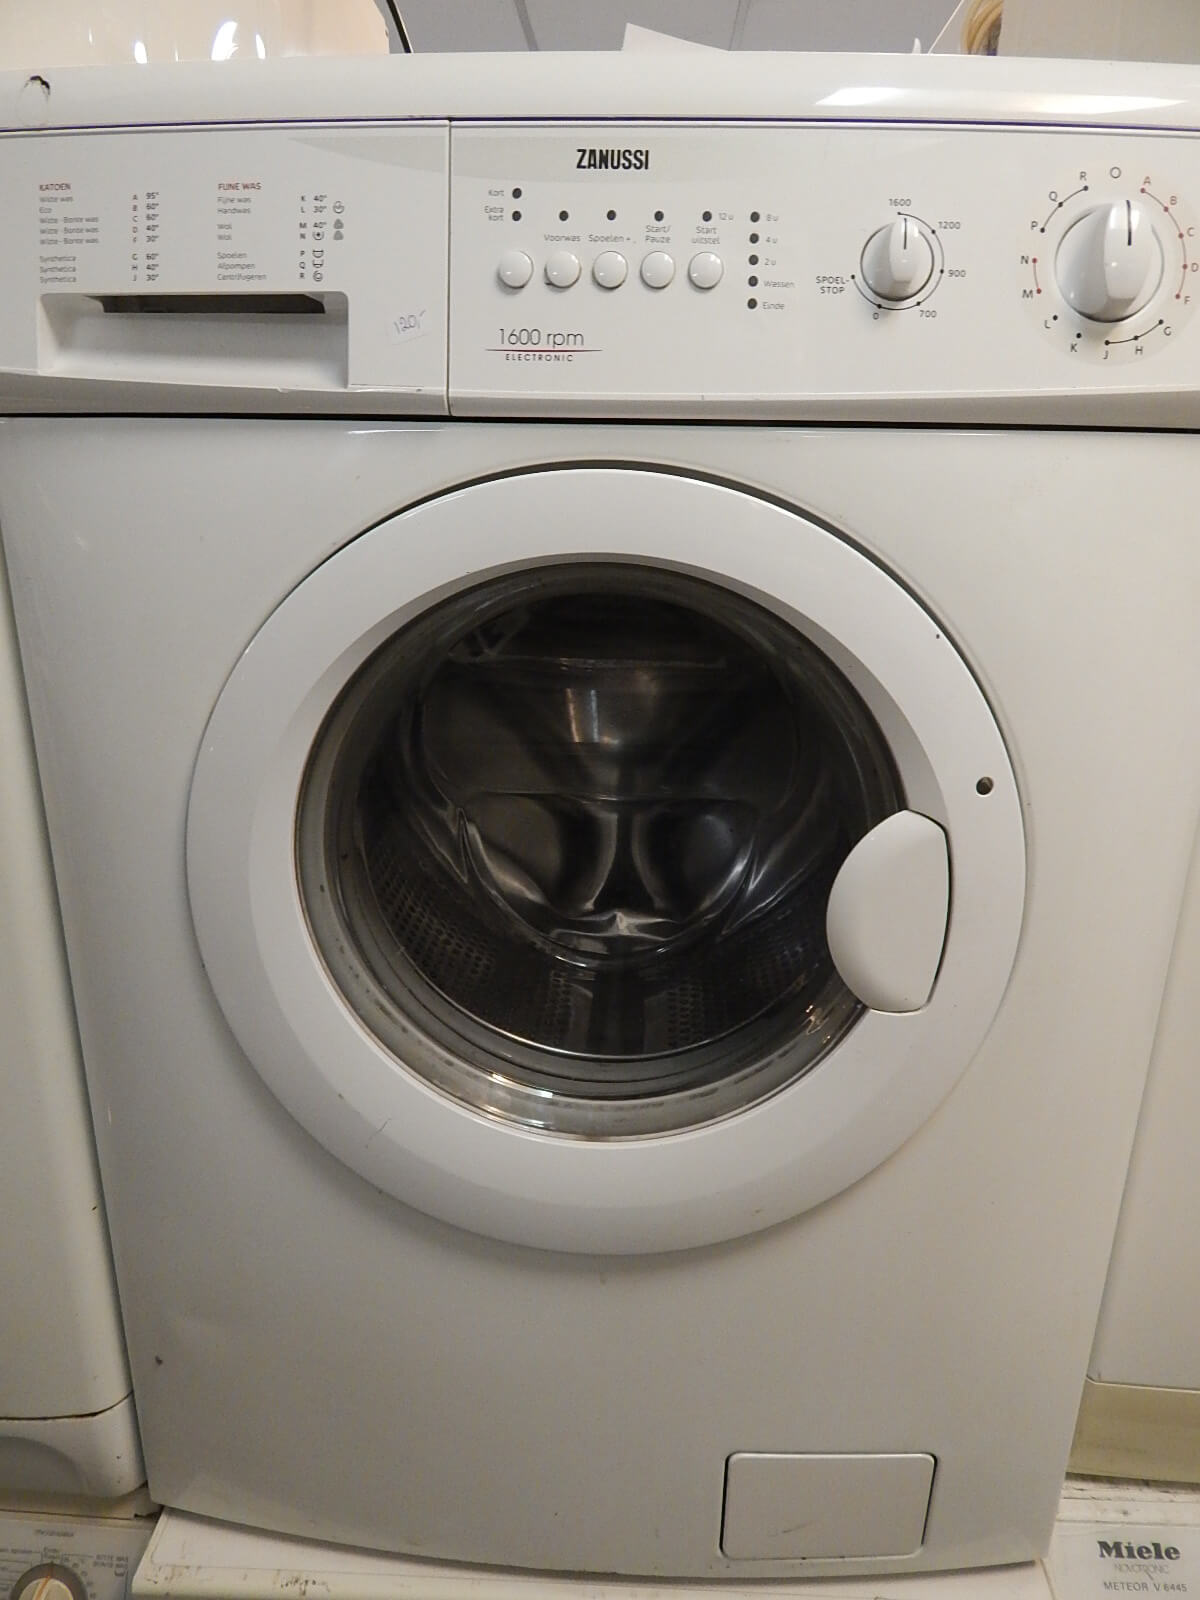 2e hands wasmachine Zanussi 1